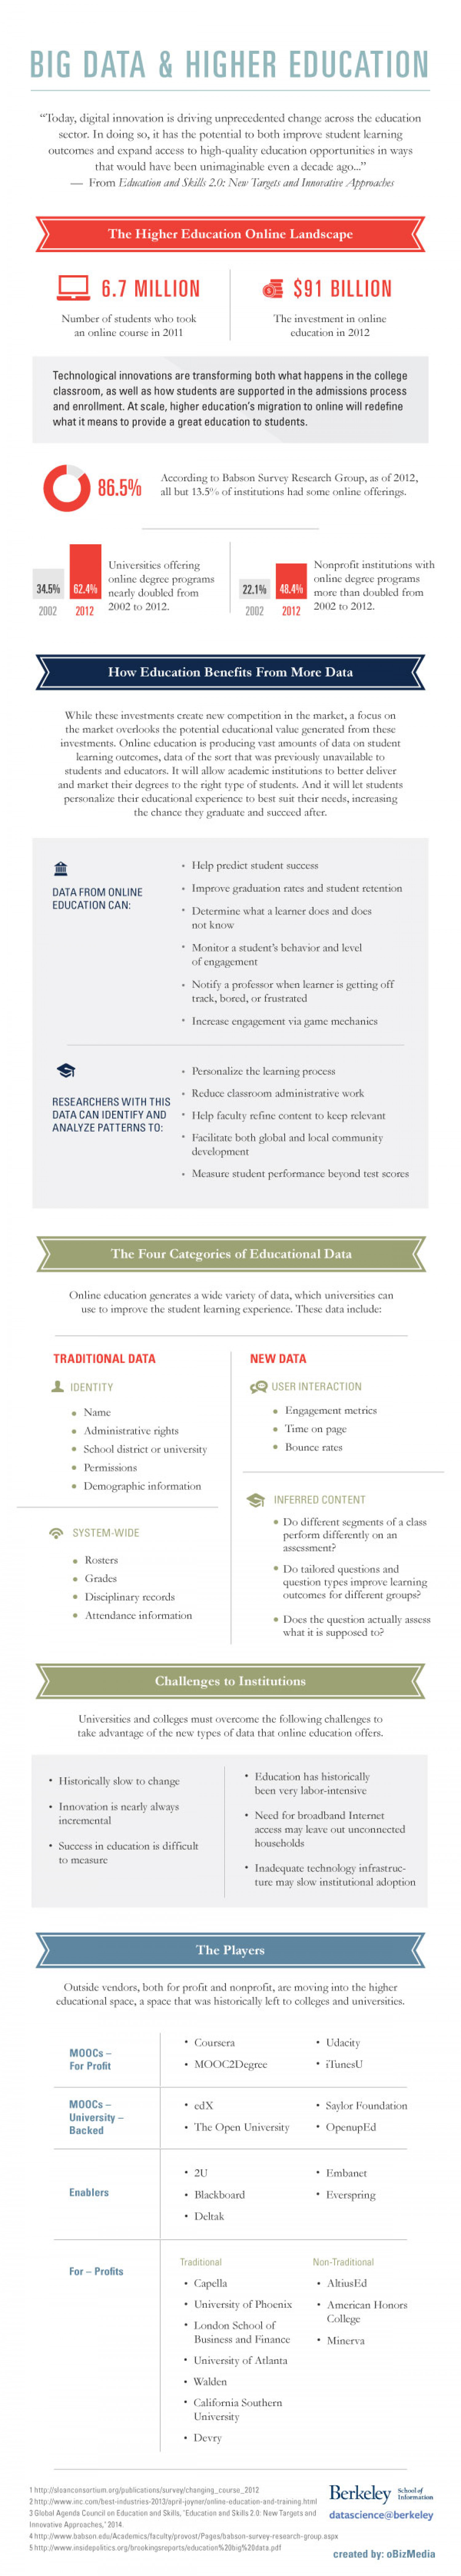 Big Data and Higher Education Infographic